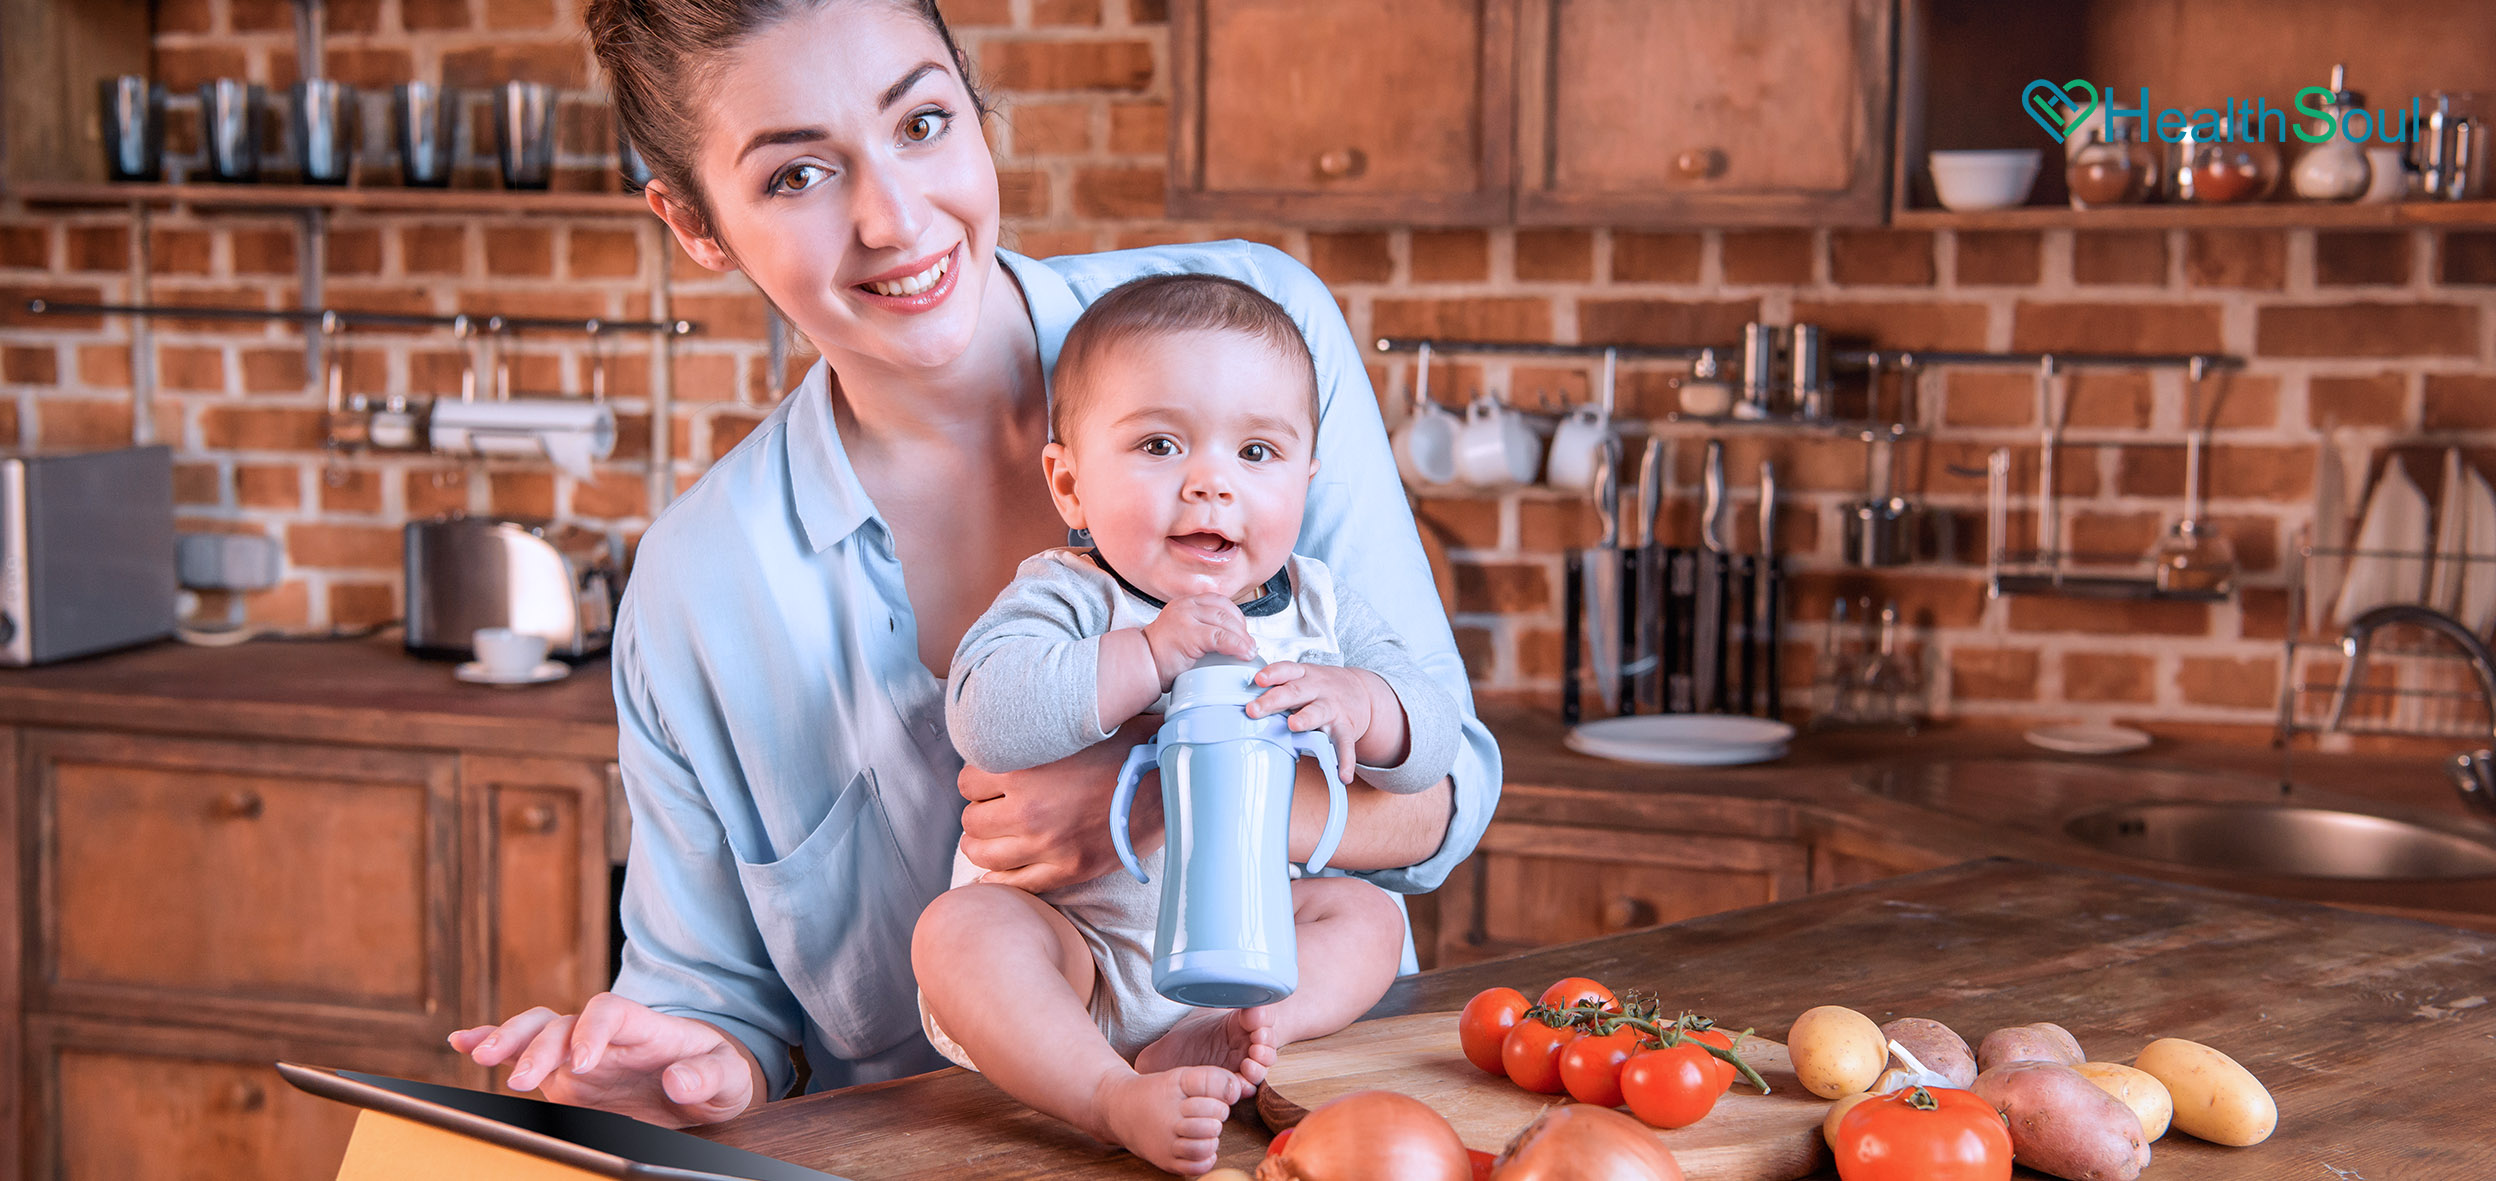 Useful solutions that every mom should know about to easily take care of their babies | HealthSoul